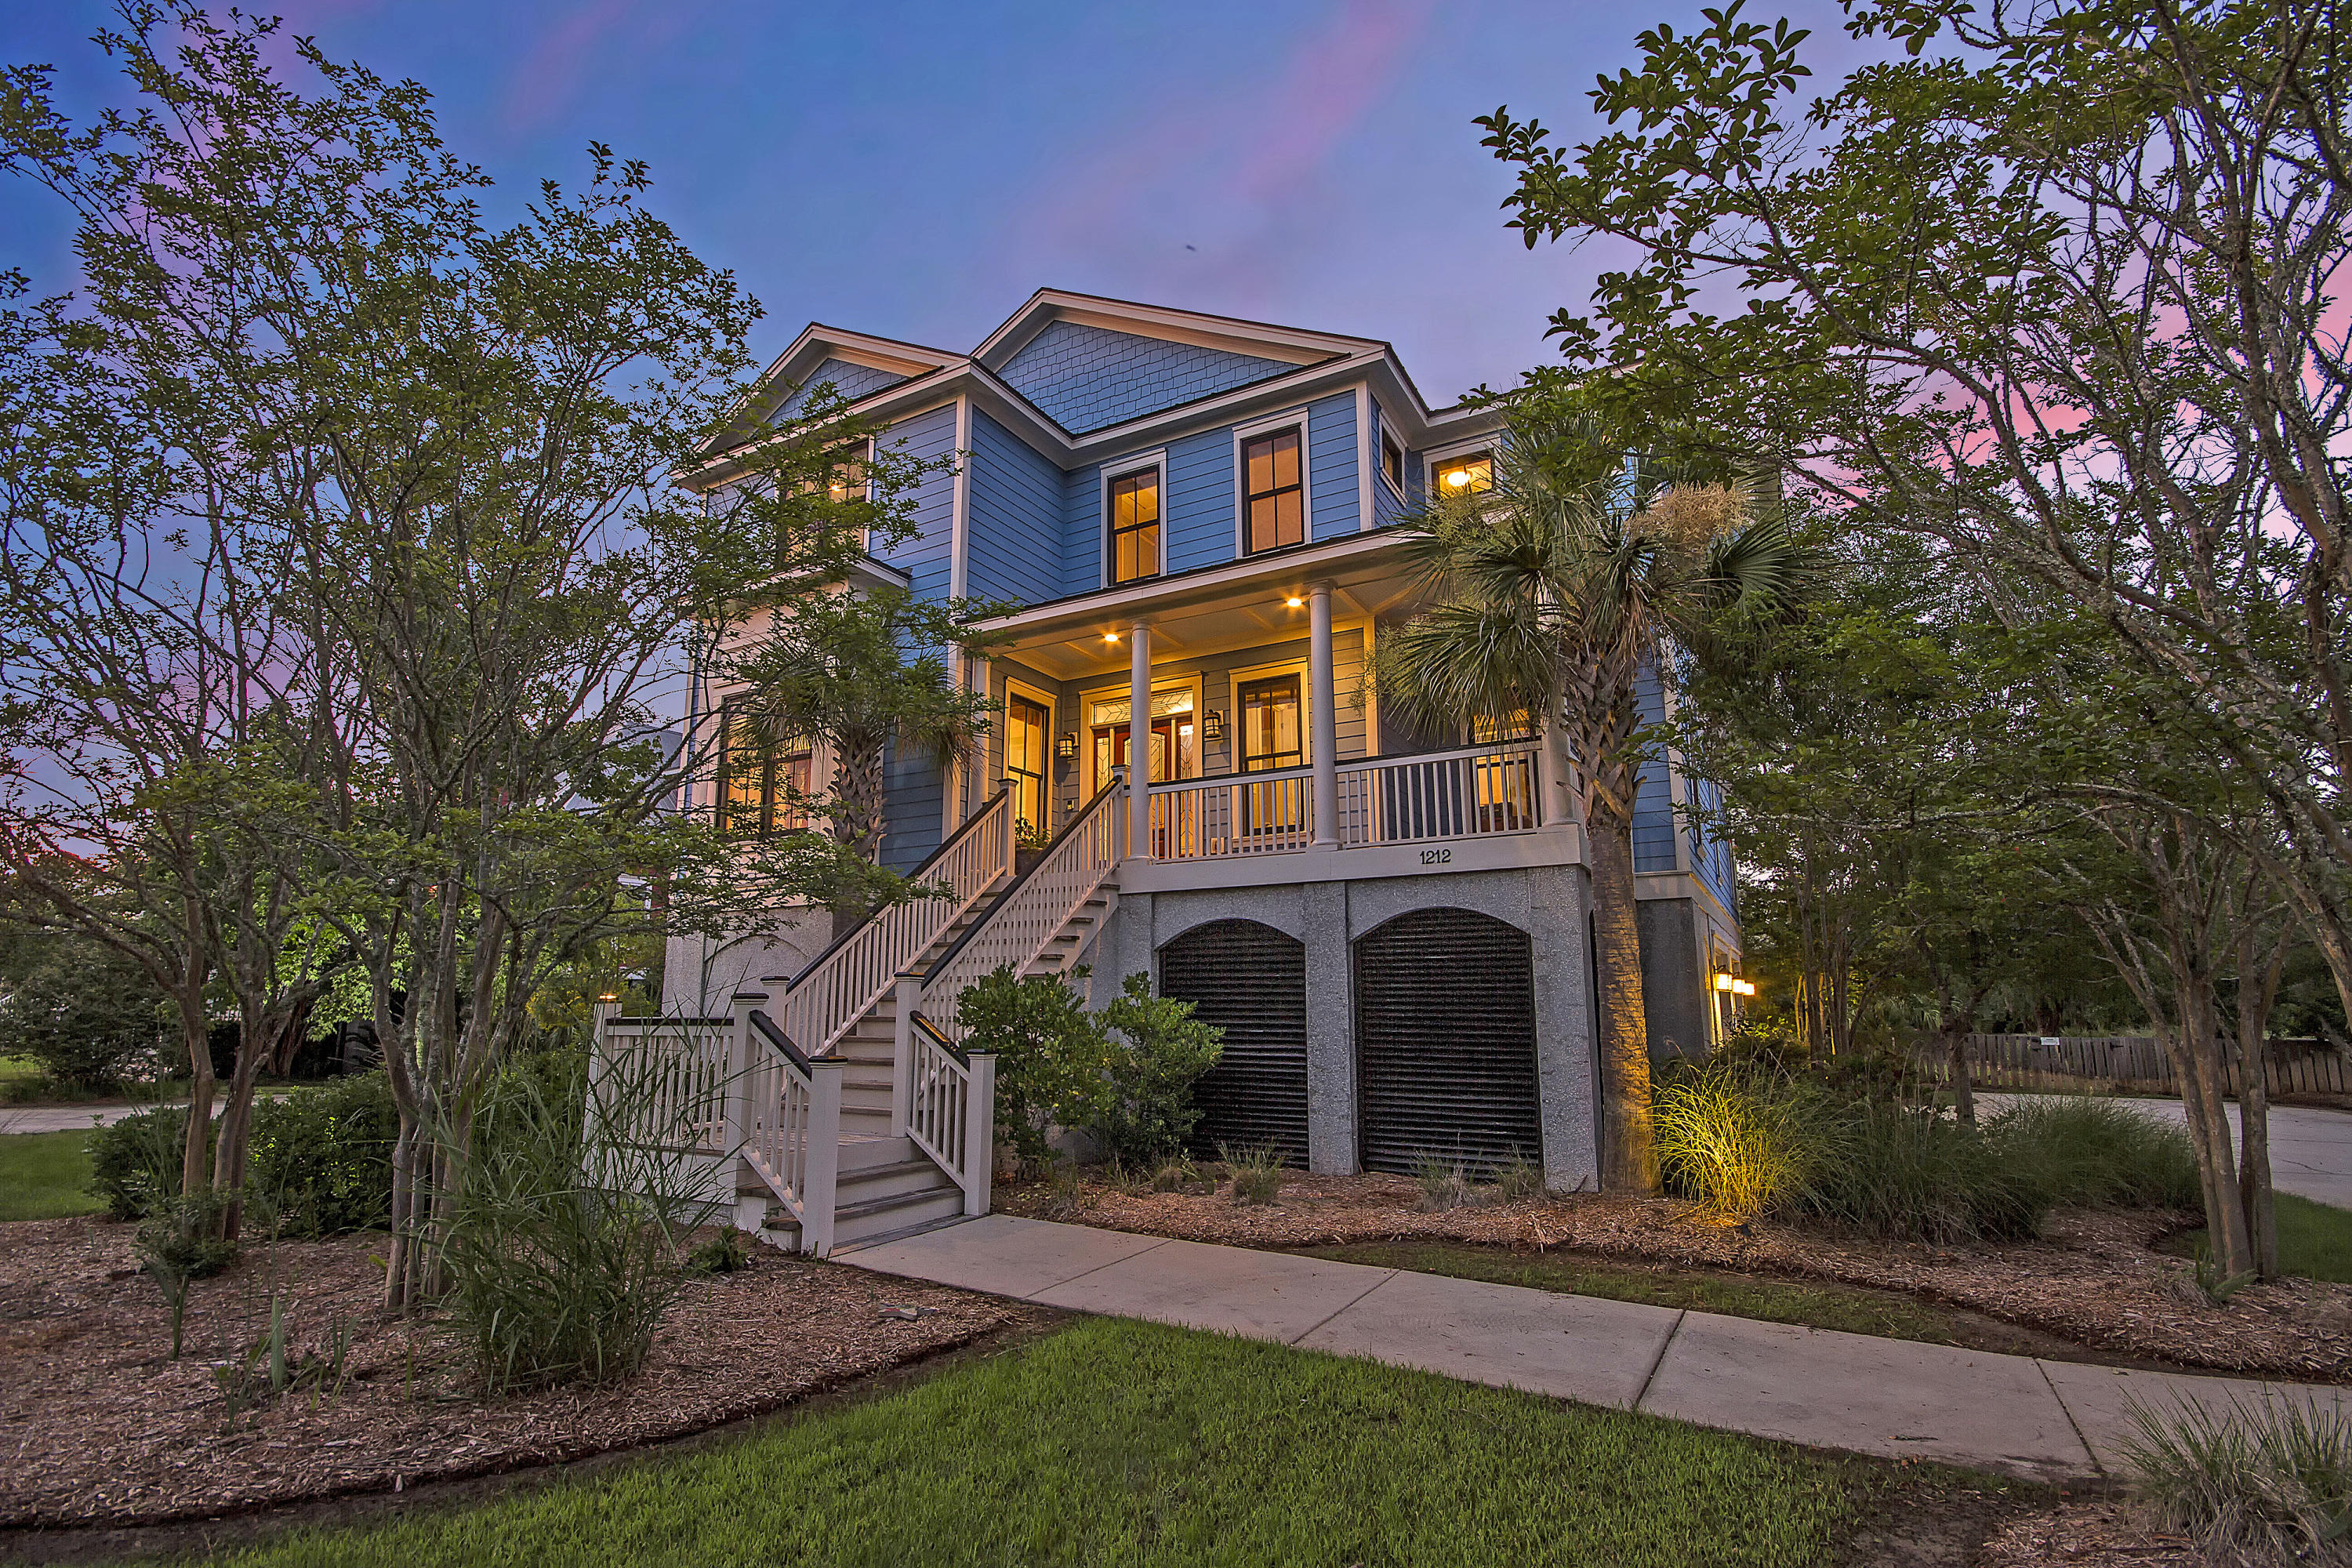 Beresford Creek Landing Homes For Sale - 1212 Winding Creek, Charleston, SC - 53